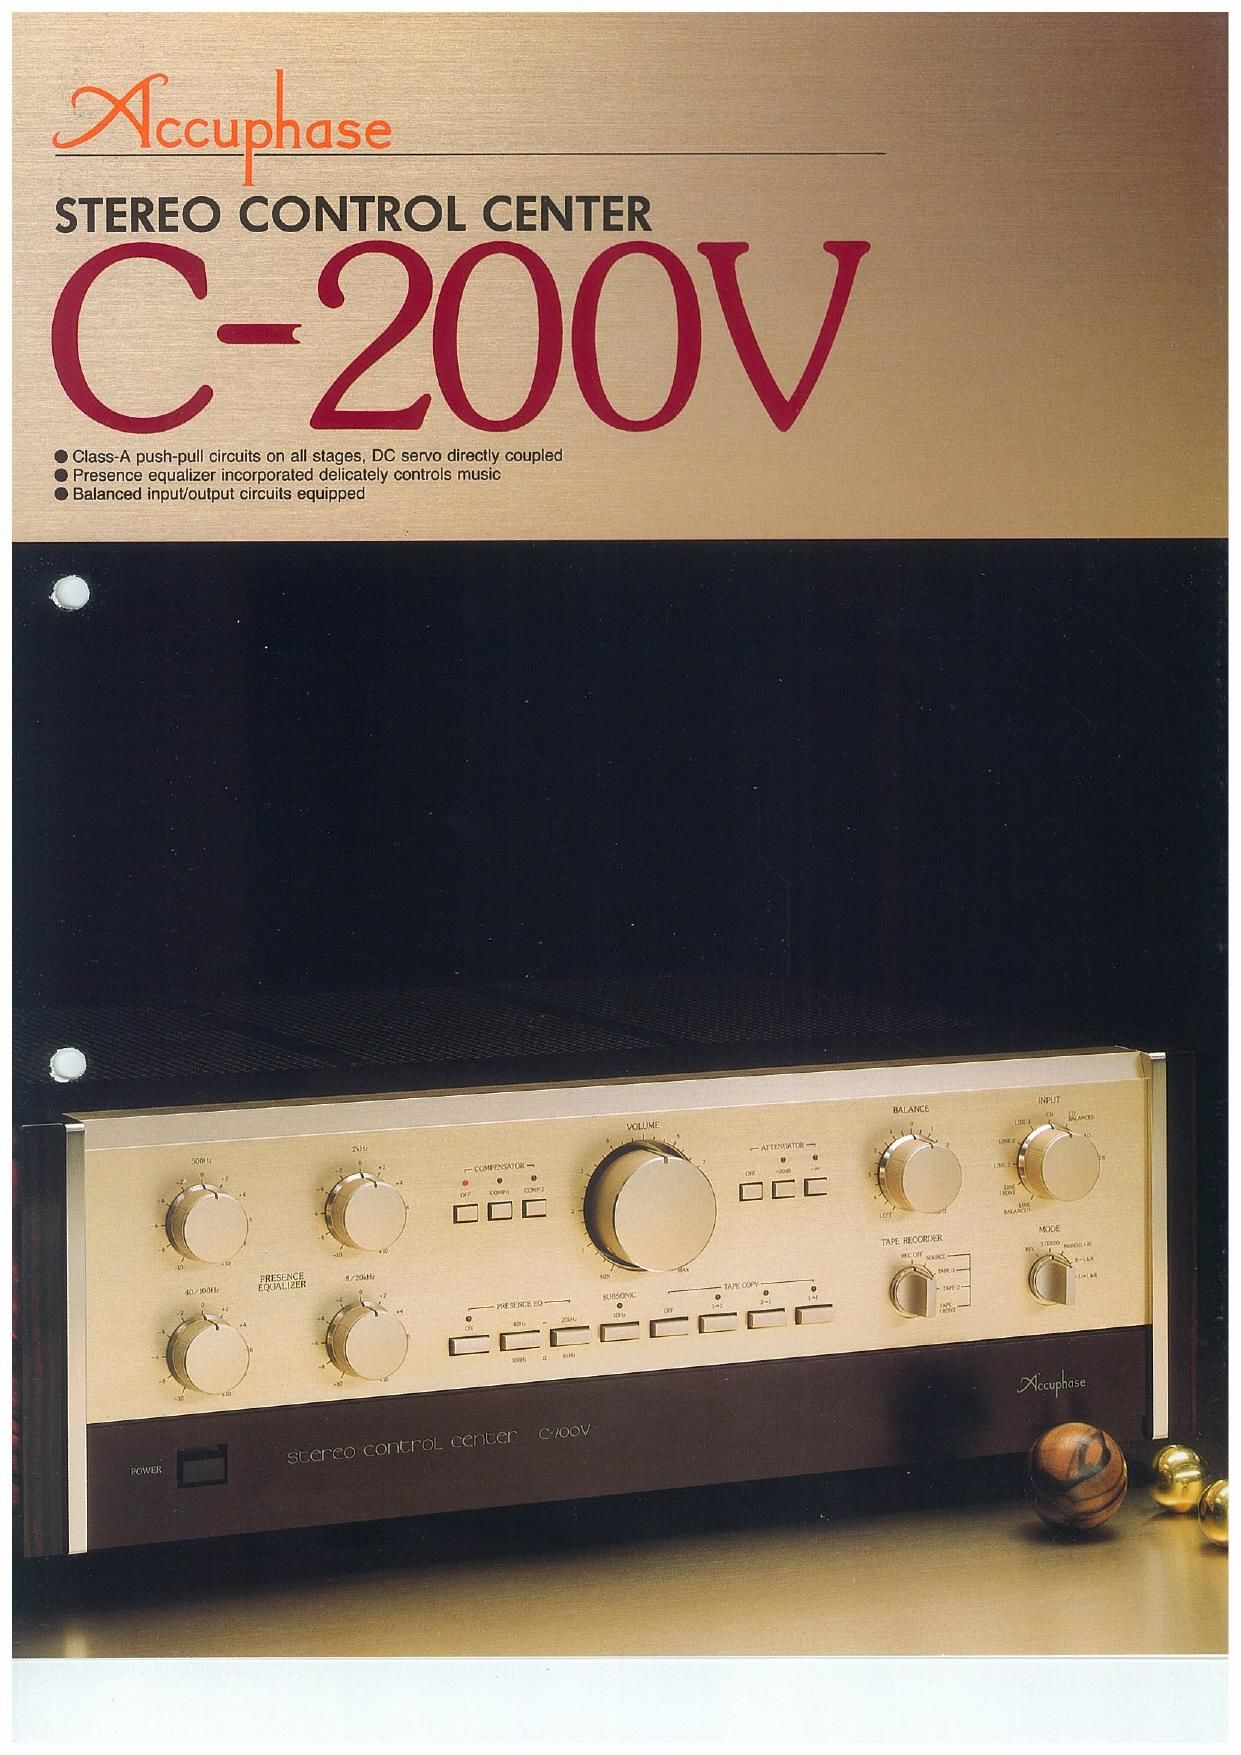 Accuphase C 200 V Brochure